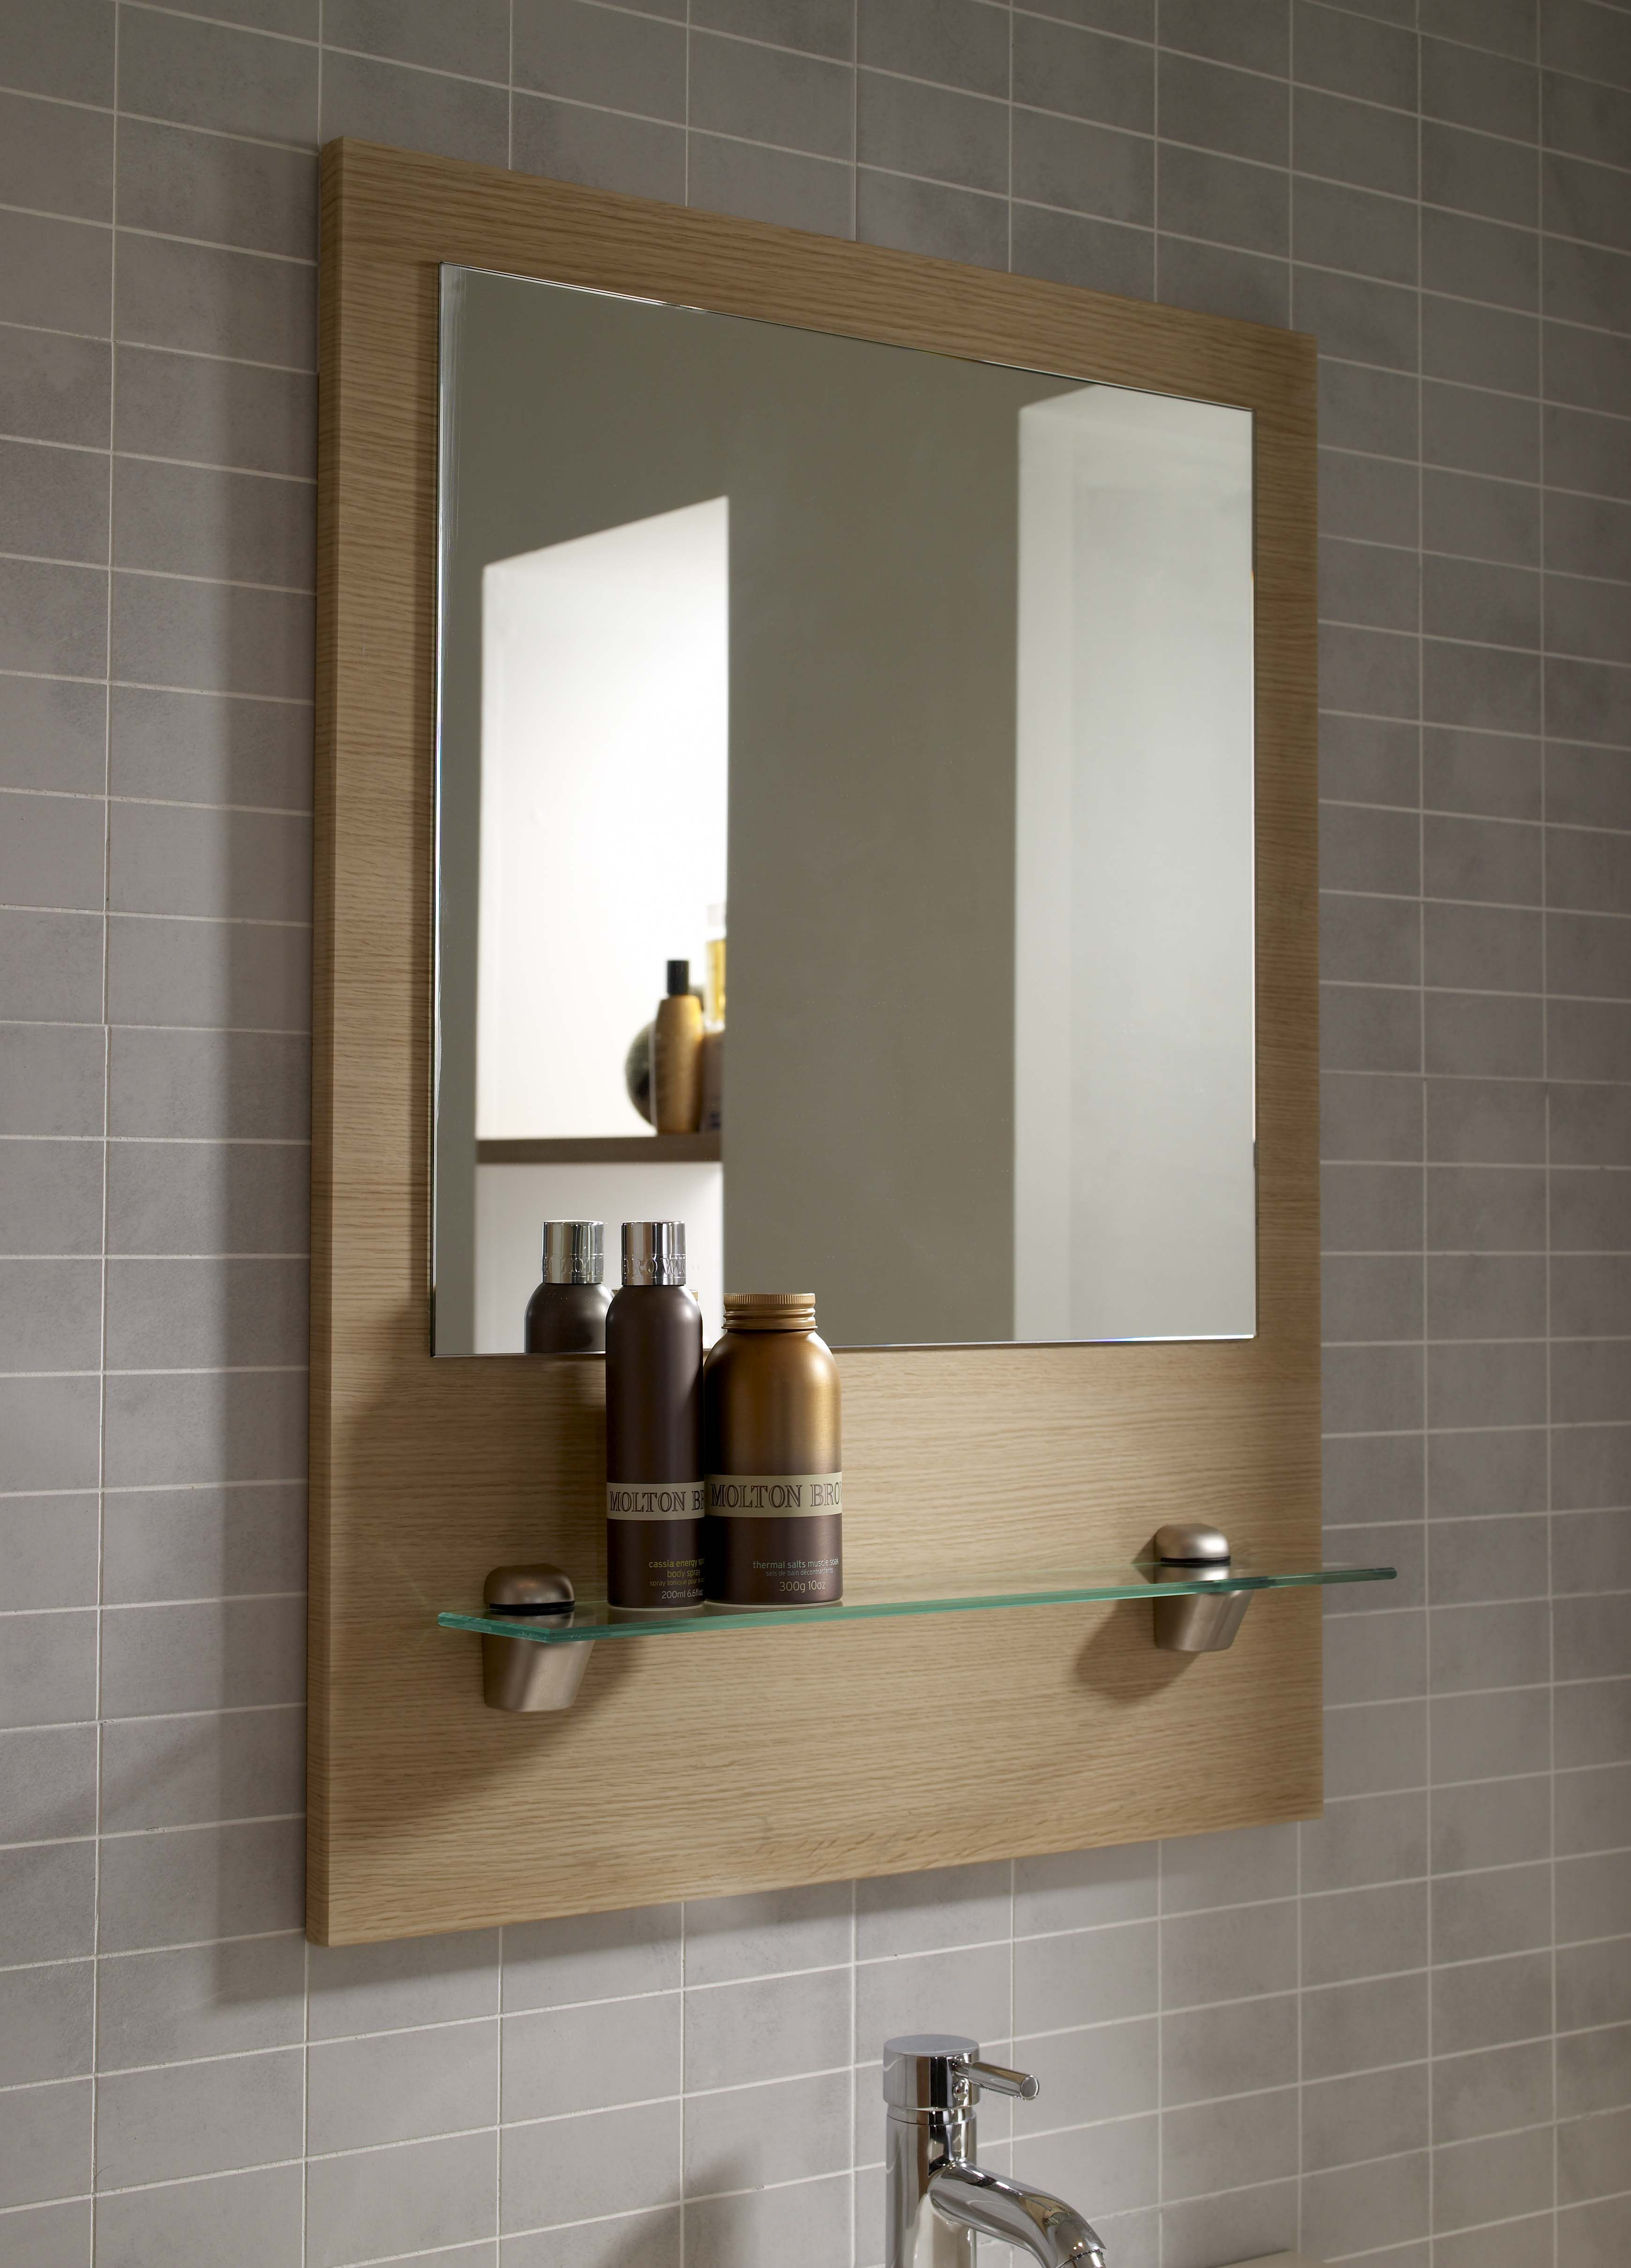 Framed Modern Mirror Metal Framed Peetz Modern Rustic Accent intended for Peetz Modern Rustic Accent Mirrors (Image 12 of 30)